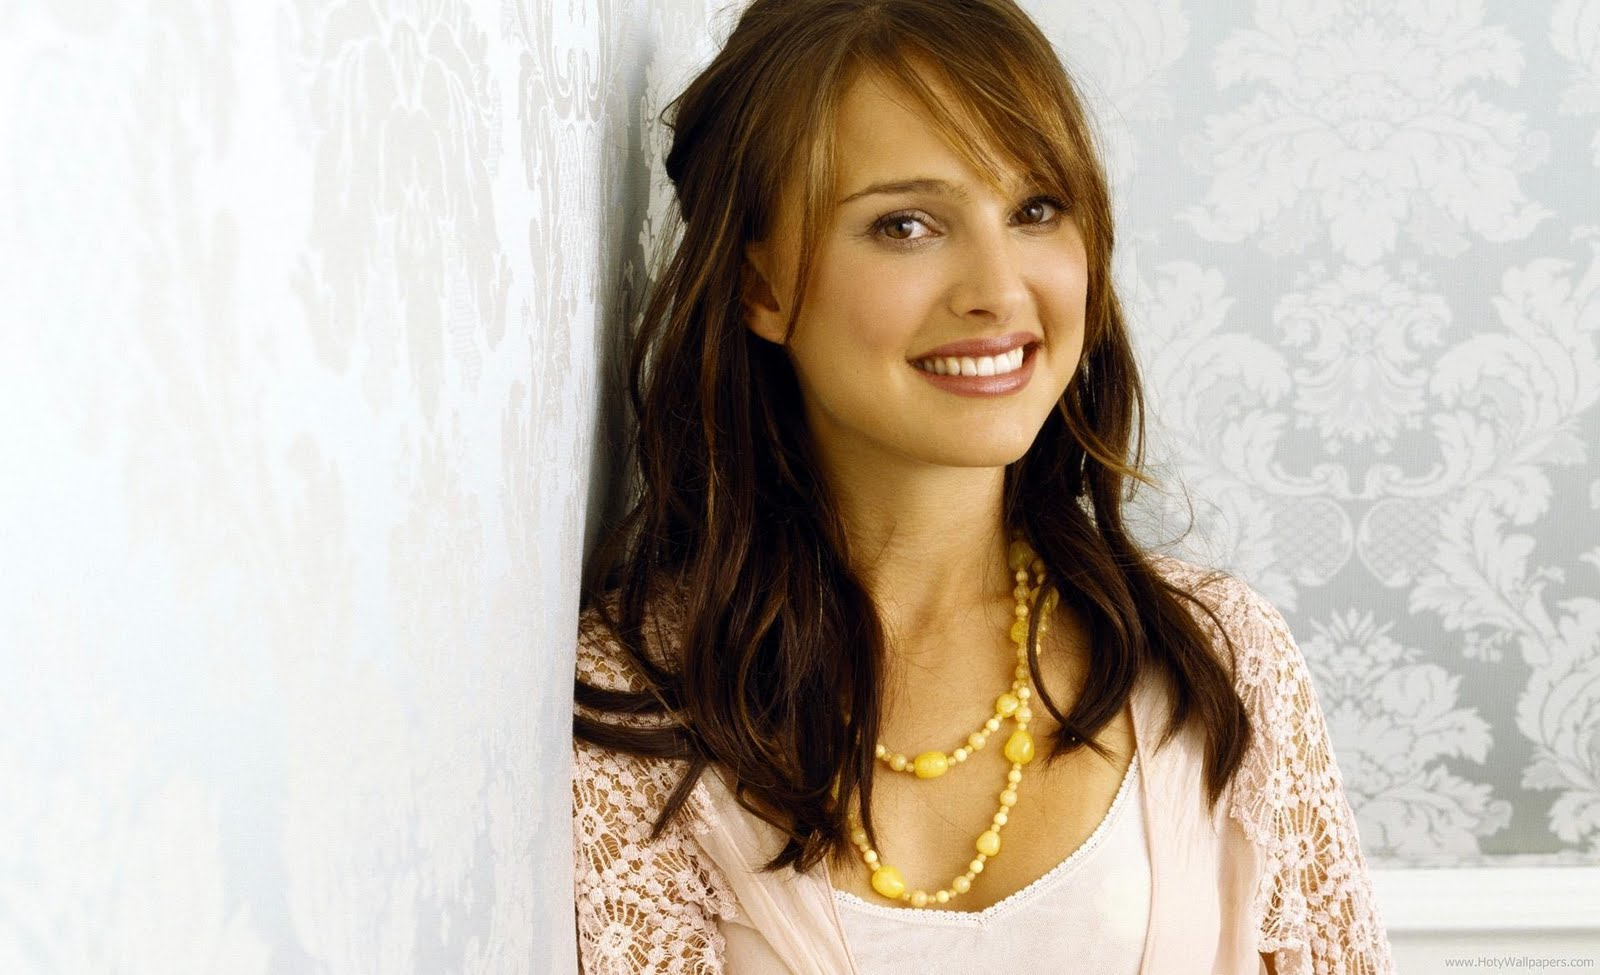 http://4.bp.blogspot.com/-AJbnI-XuV94/TrQ0uqHLA-I/AAAAAAAAOas/01wVjoCiE3k/s1600/natalie_portman_beautiful_actress_wallpaper.jpg